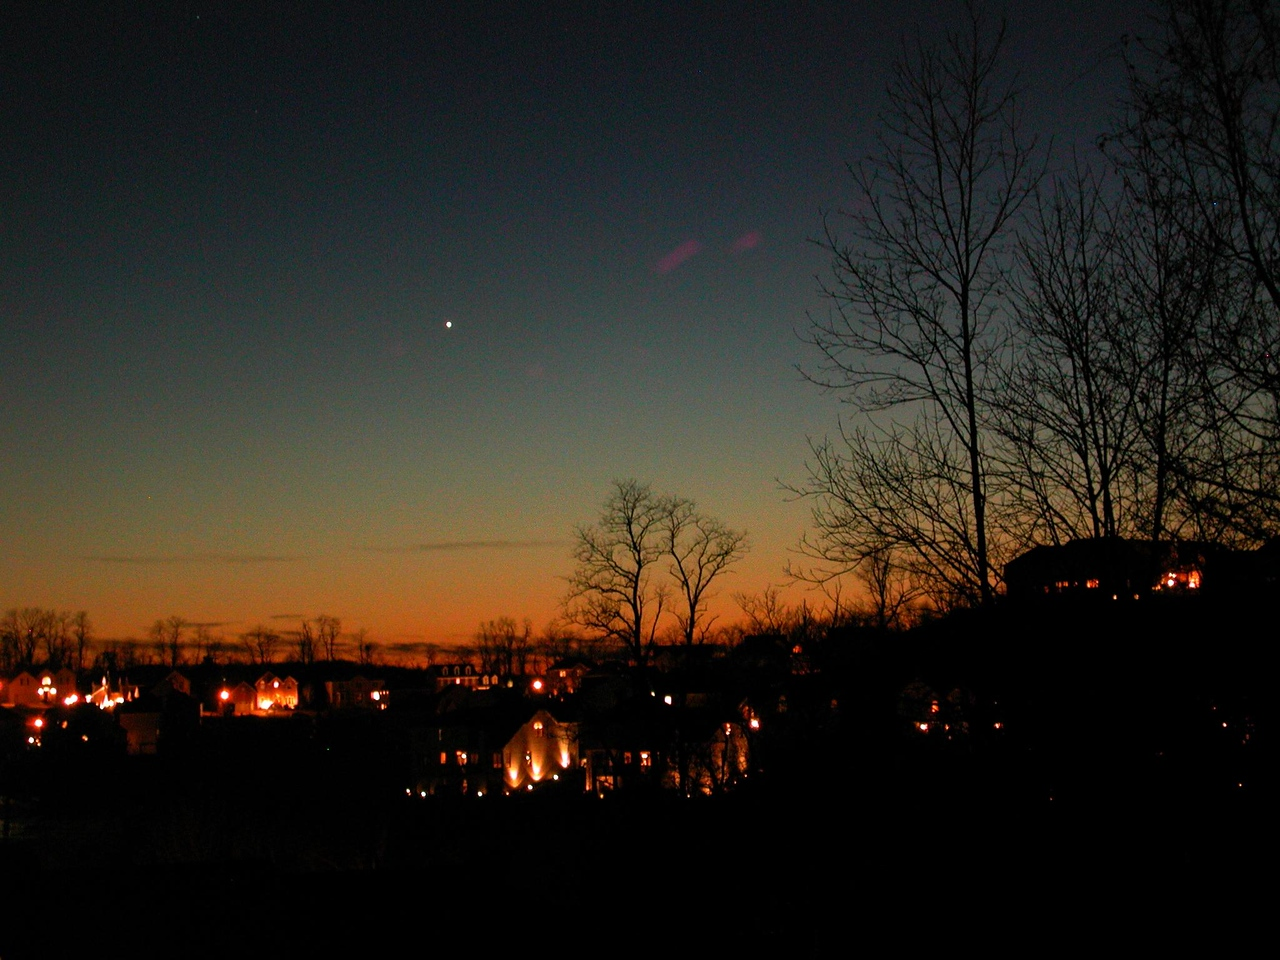 On Jan 17, 2006 I took this image in 26 degree weather of the planet Venus setting in the sunset fom a vantge point near my home; in South Park. On Jan 8, the comet was visible from this same area and dissappeared to the right of the big house that appears in the extream right hand side of this image. Goodbye great Comet...we will miss you!    Click on the next image for more great Comet McNaught images!!